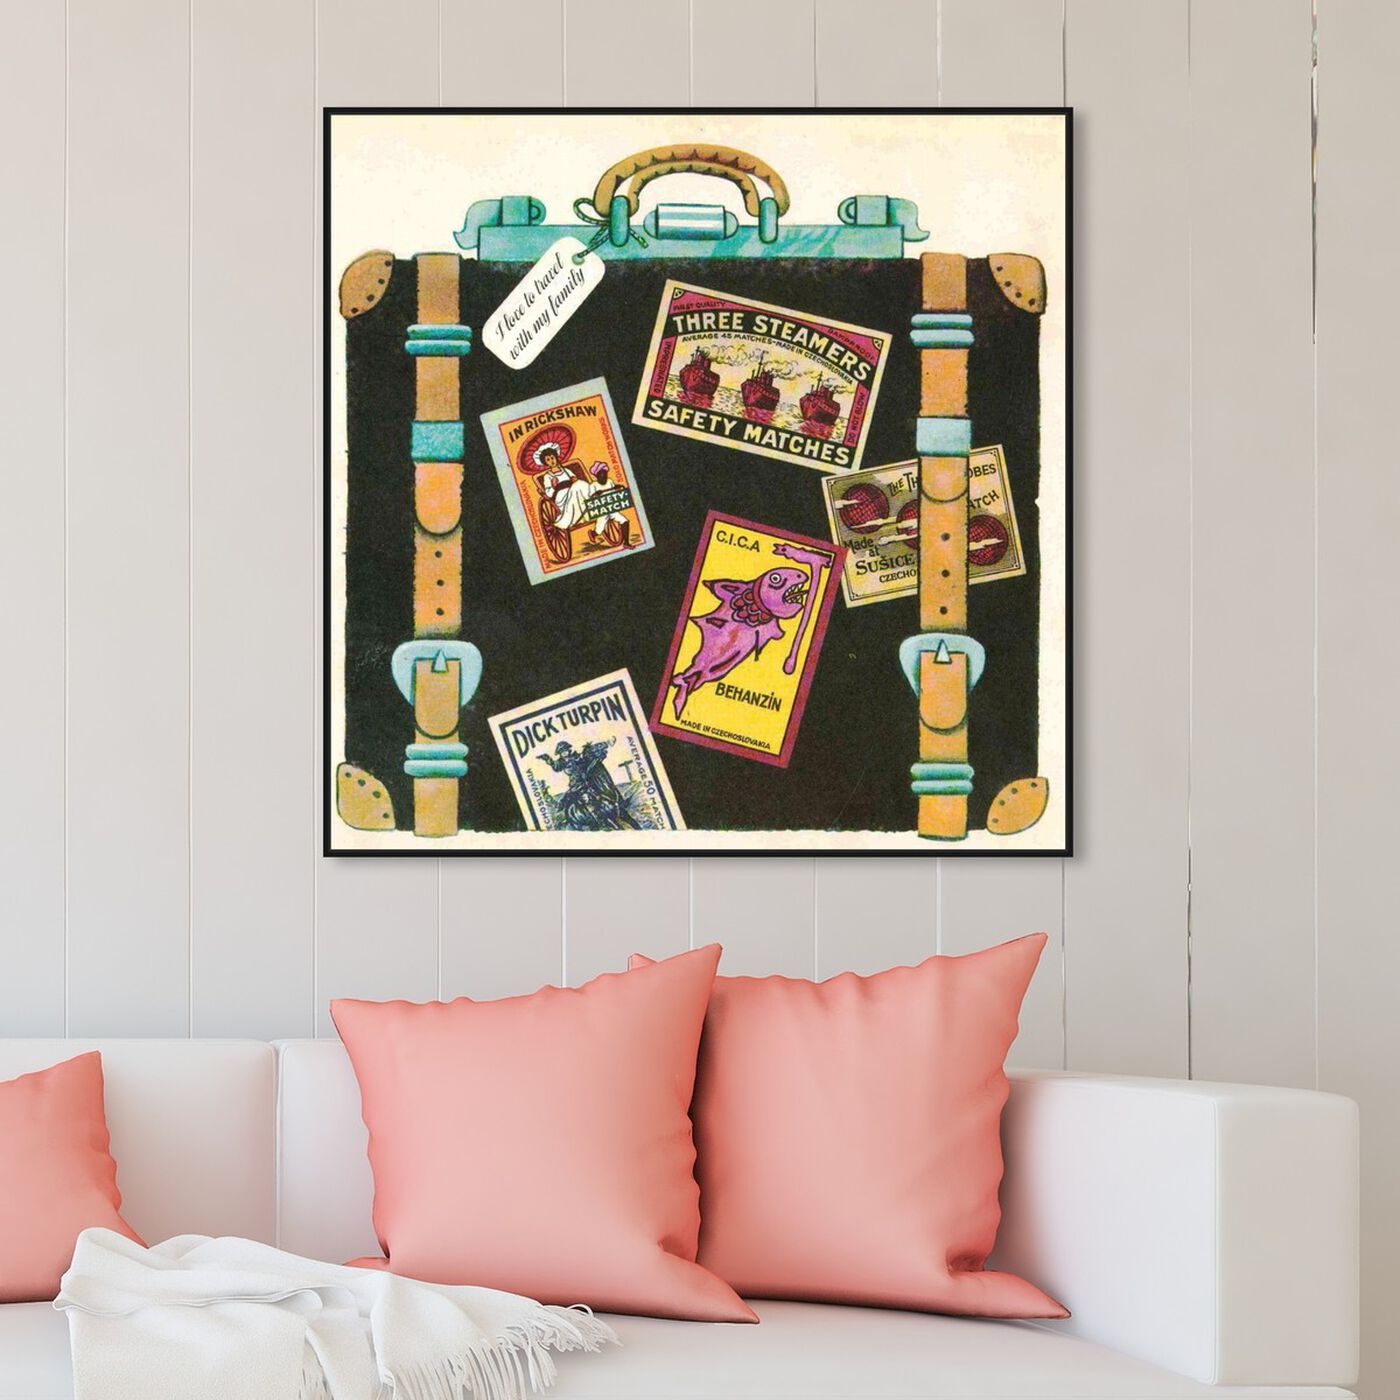 Hanging view of I Love to Travel featuring fashion and glam and travel essentials art.